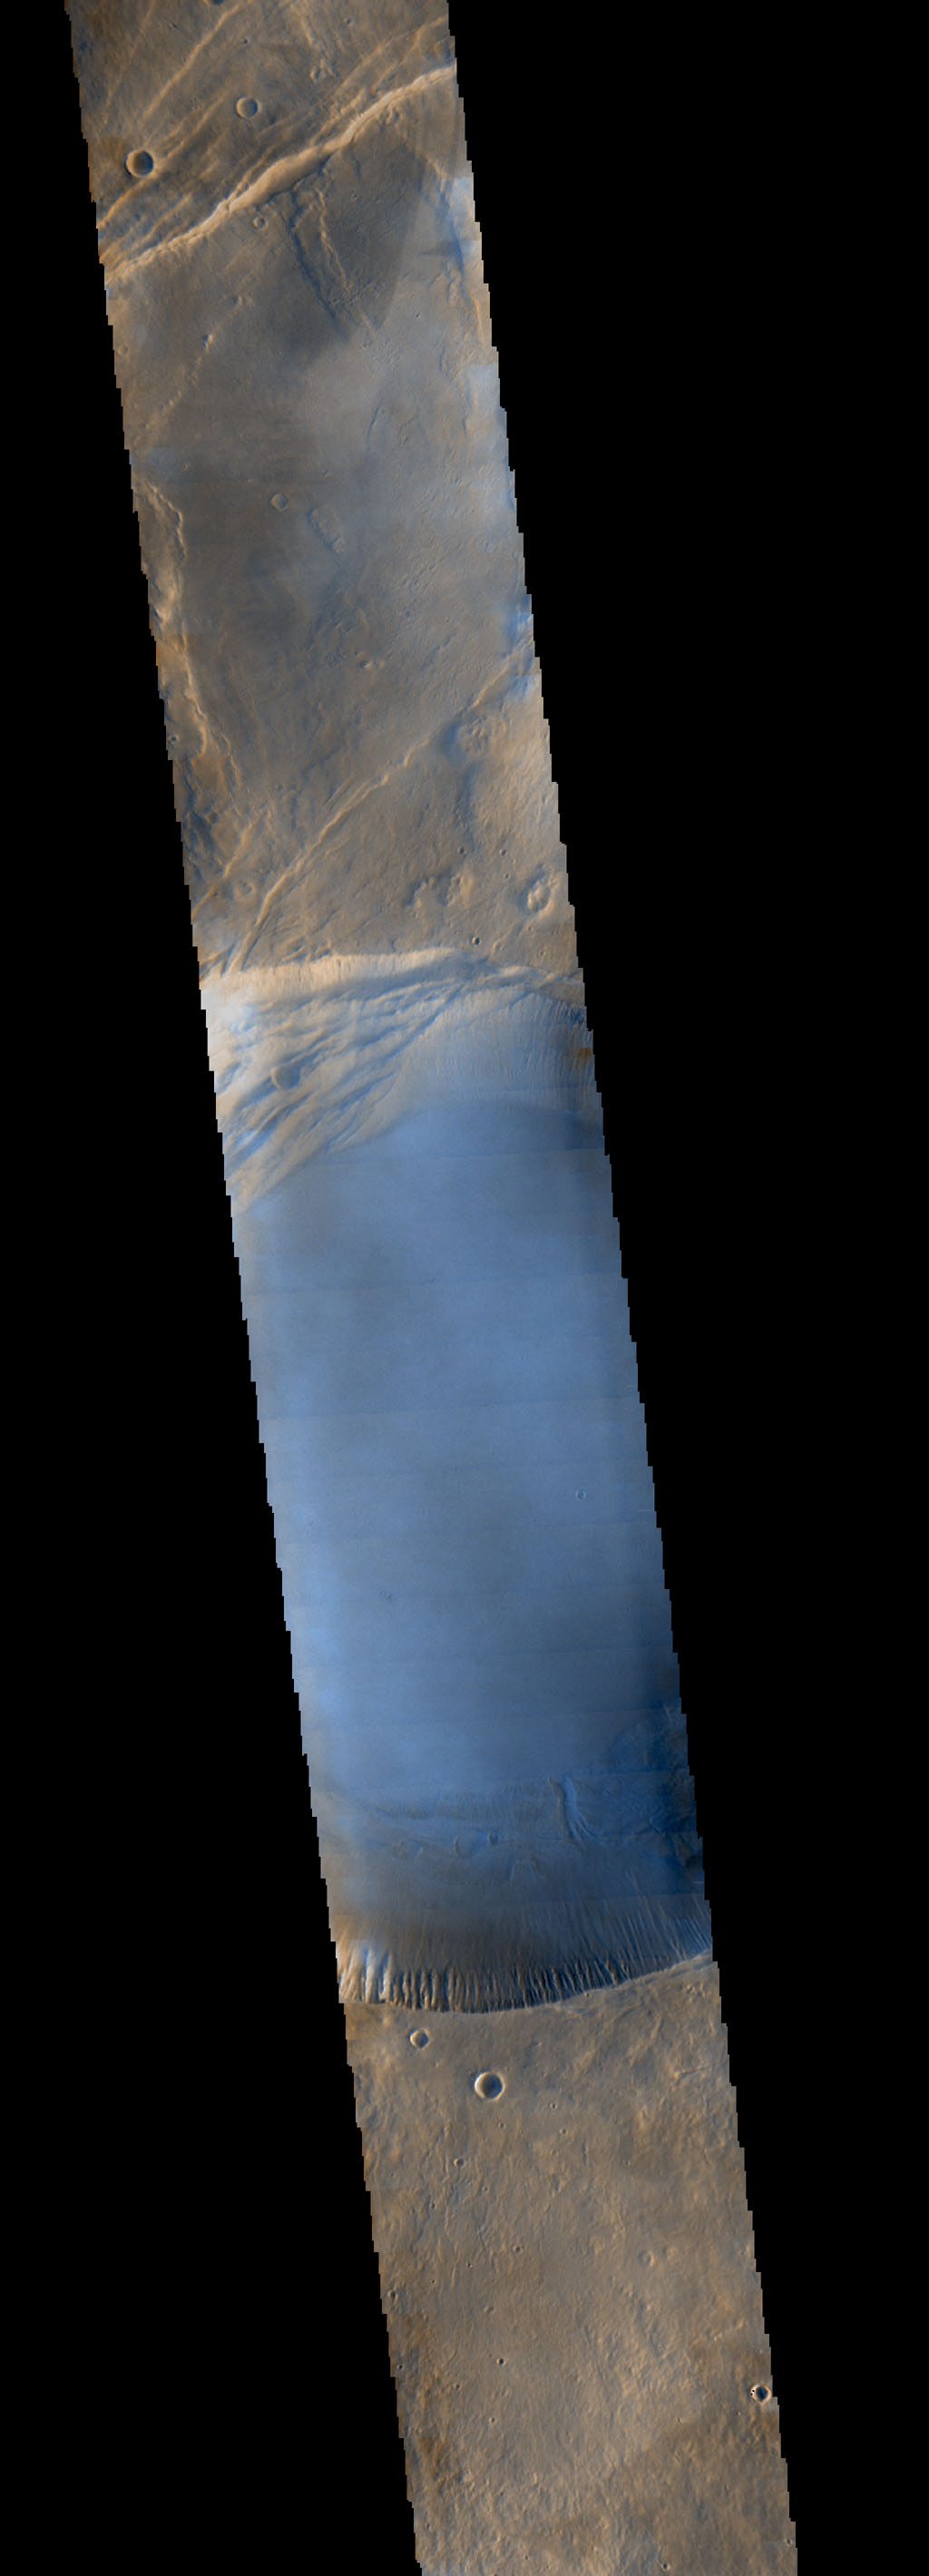 Seen shortly after local Martian sunrise, clouds gather in the summit pit, or caldera, of Pavonis Mons, a giant volcano on Mars, in this image from the Thermal Emission Imaging System (THEMIS) on NASA's Mars Odyssey orbiter.